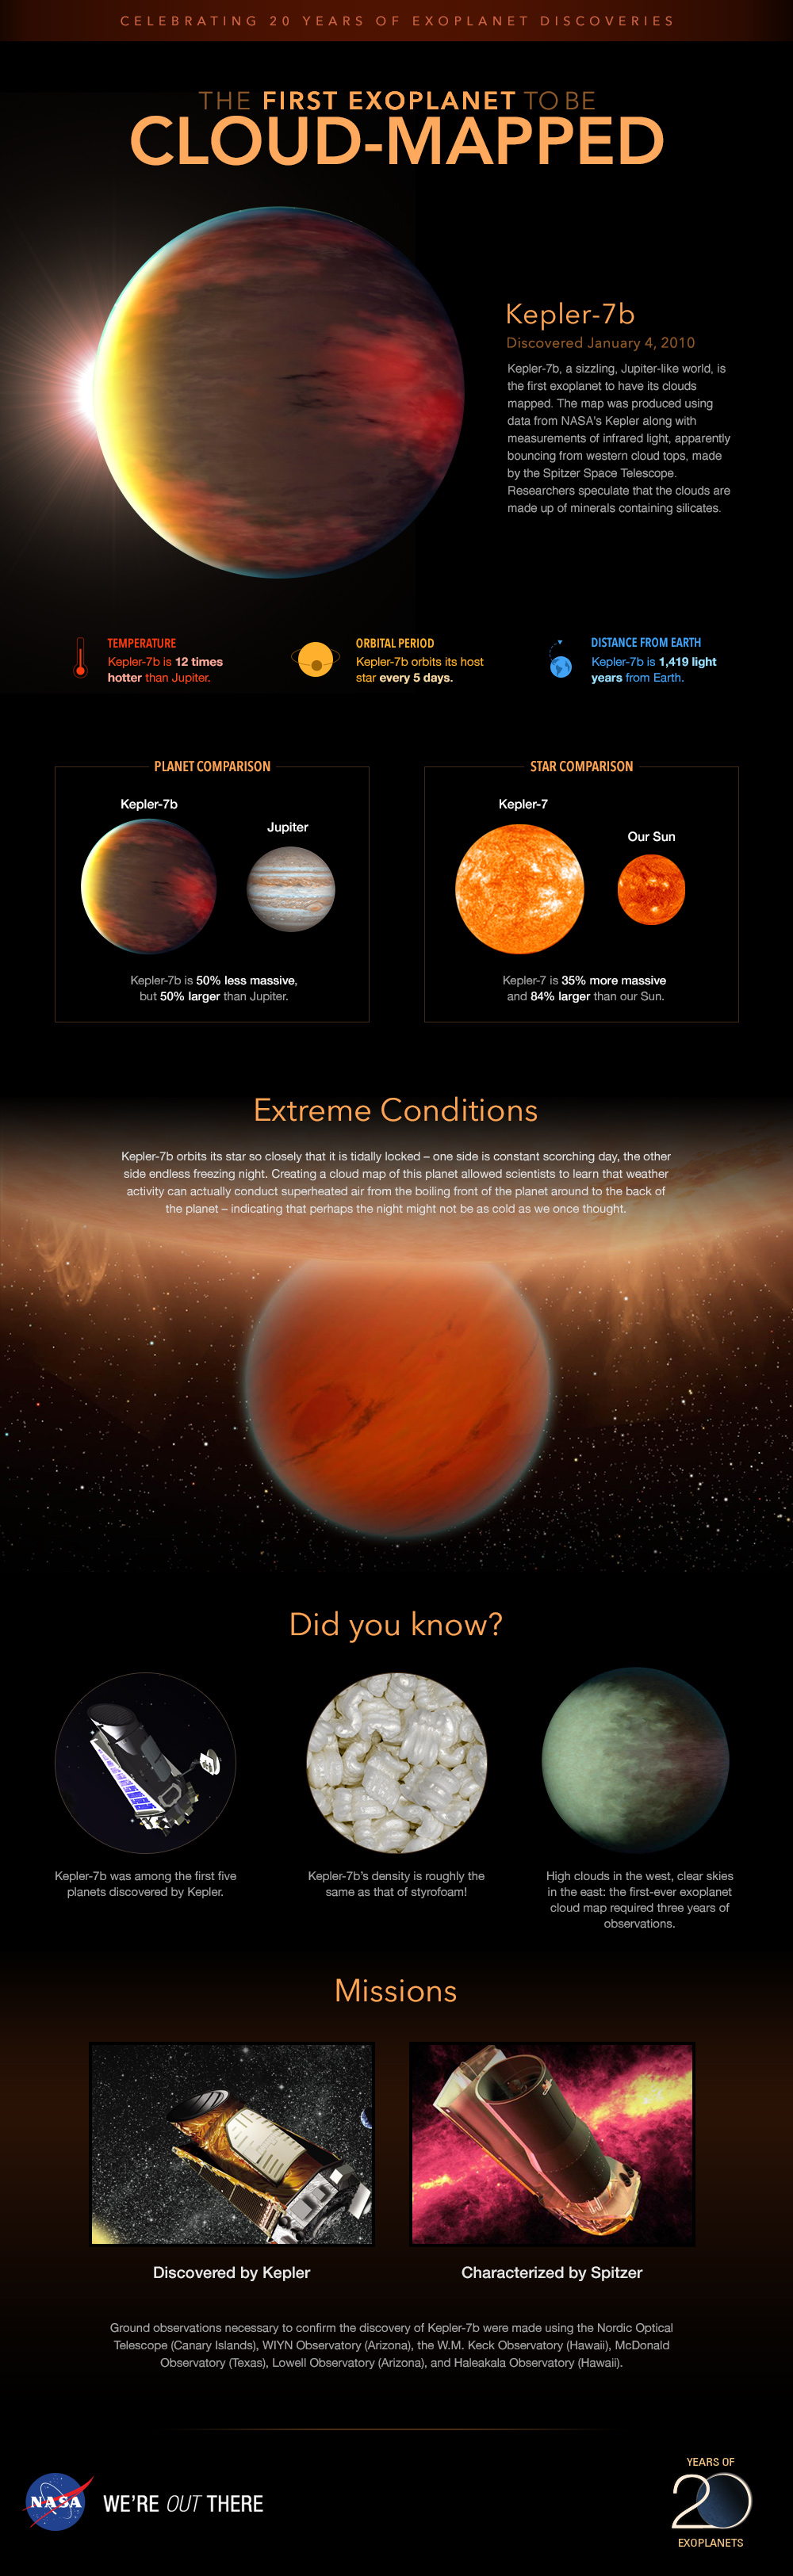 Infographic: Planet Kepler-7b, cloud mapped